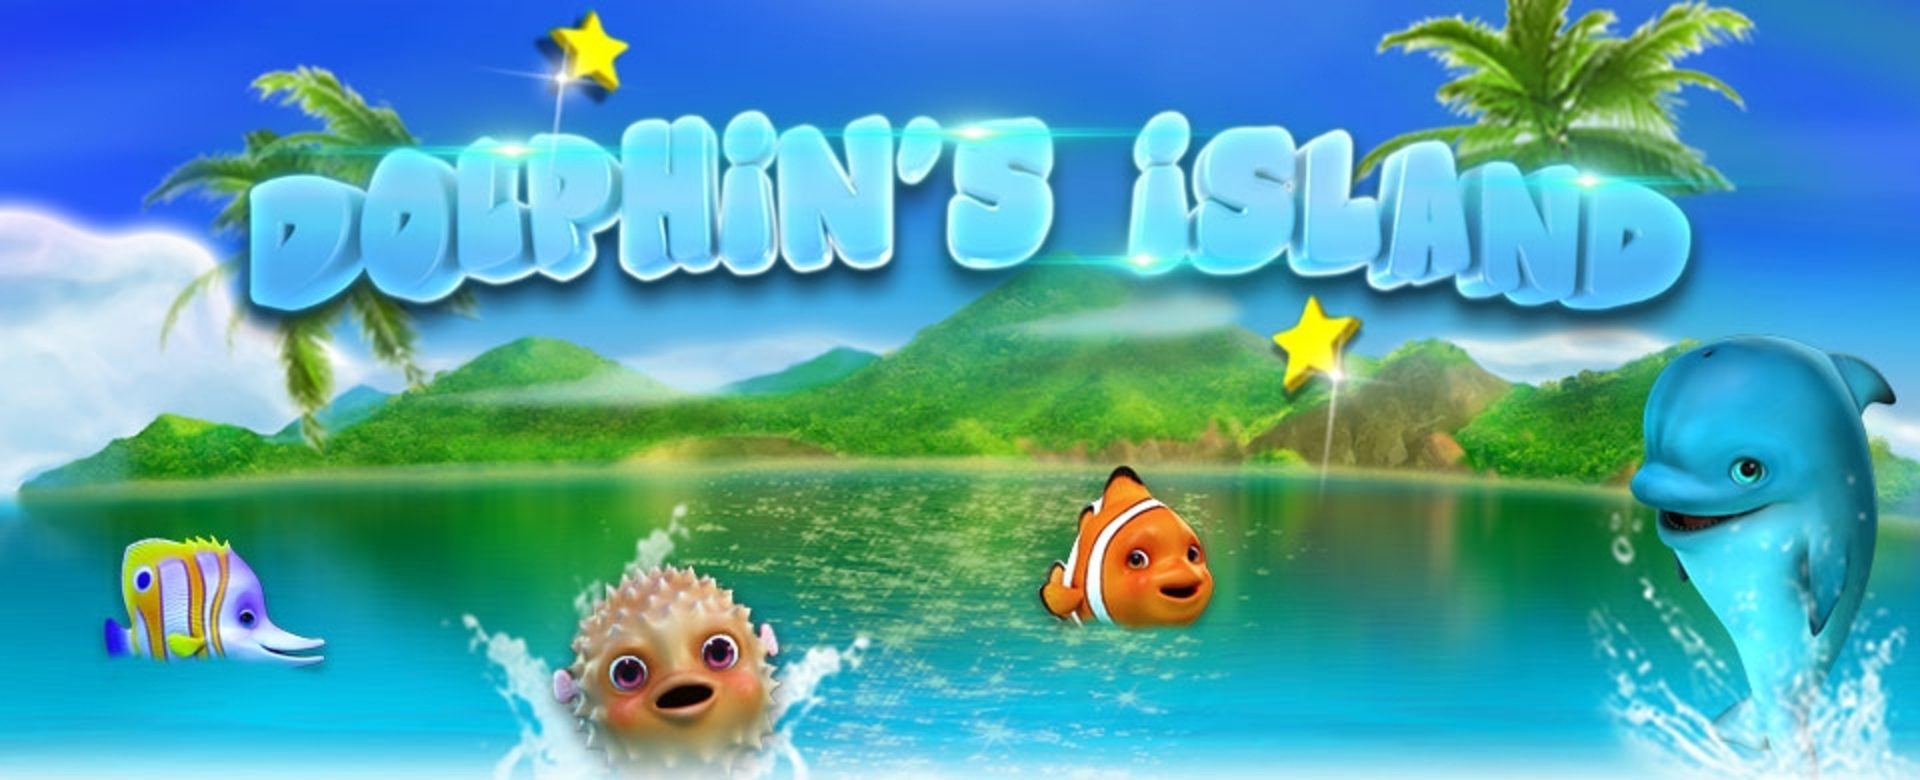 The Dolphin's Island Online Slot Demo Game by iSoftBet